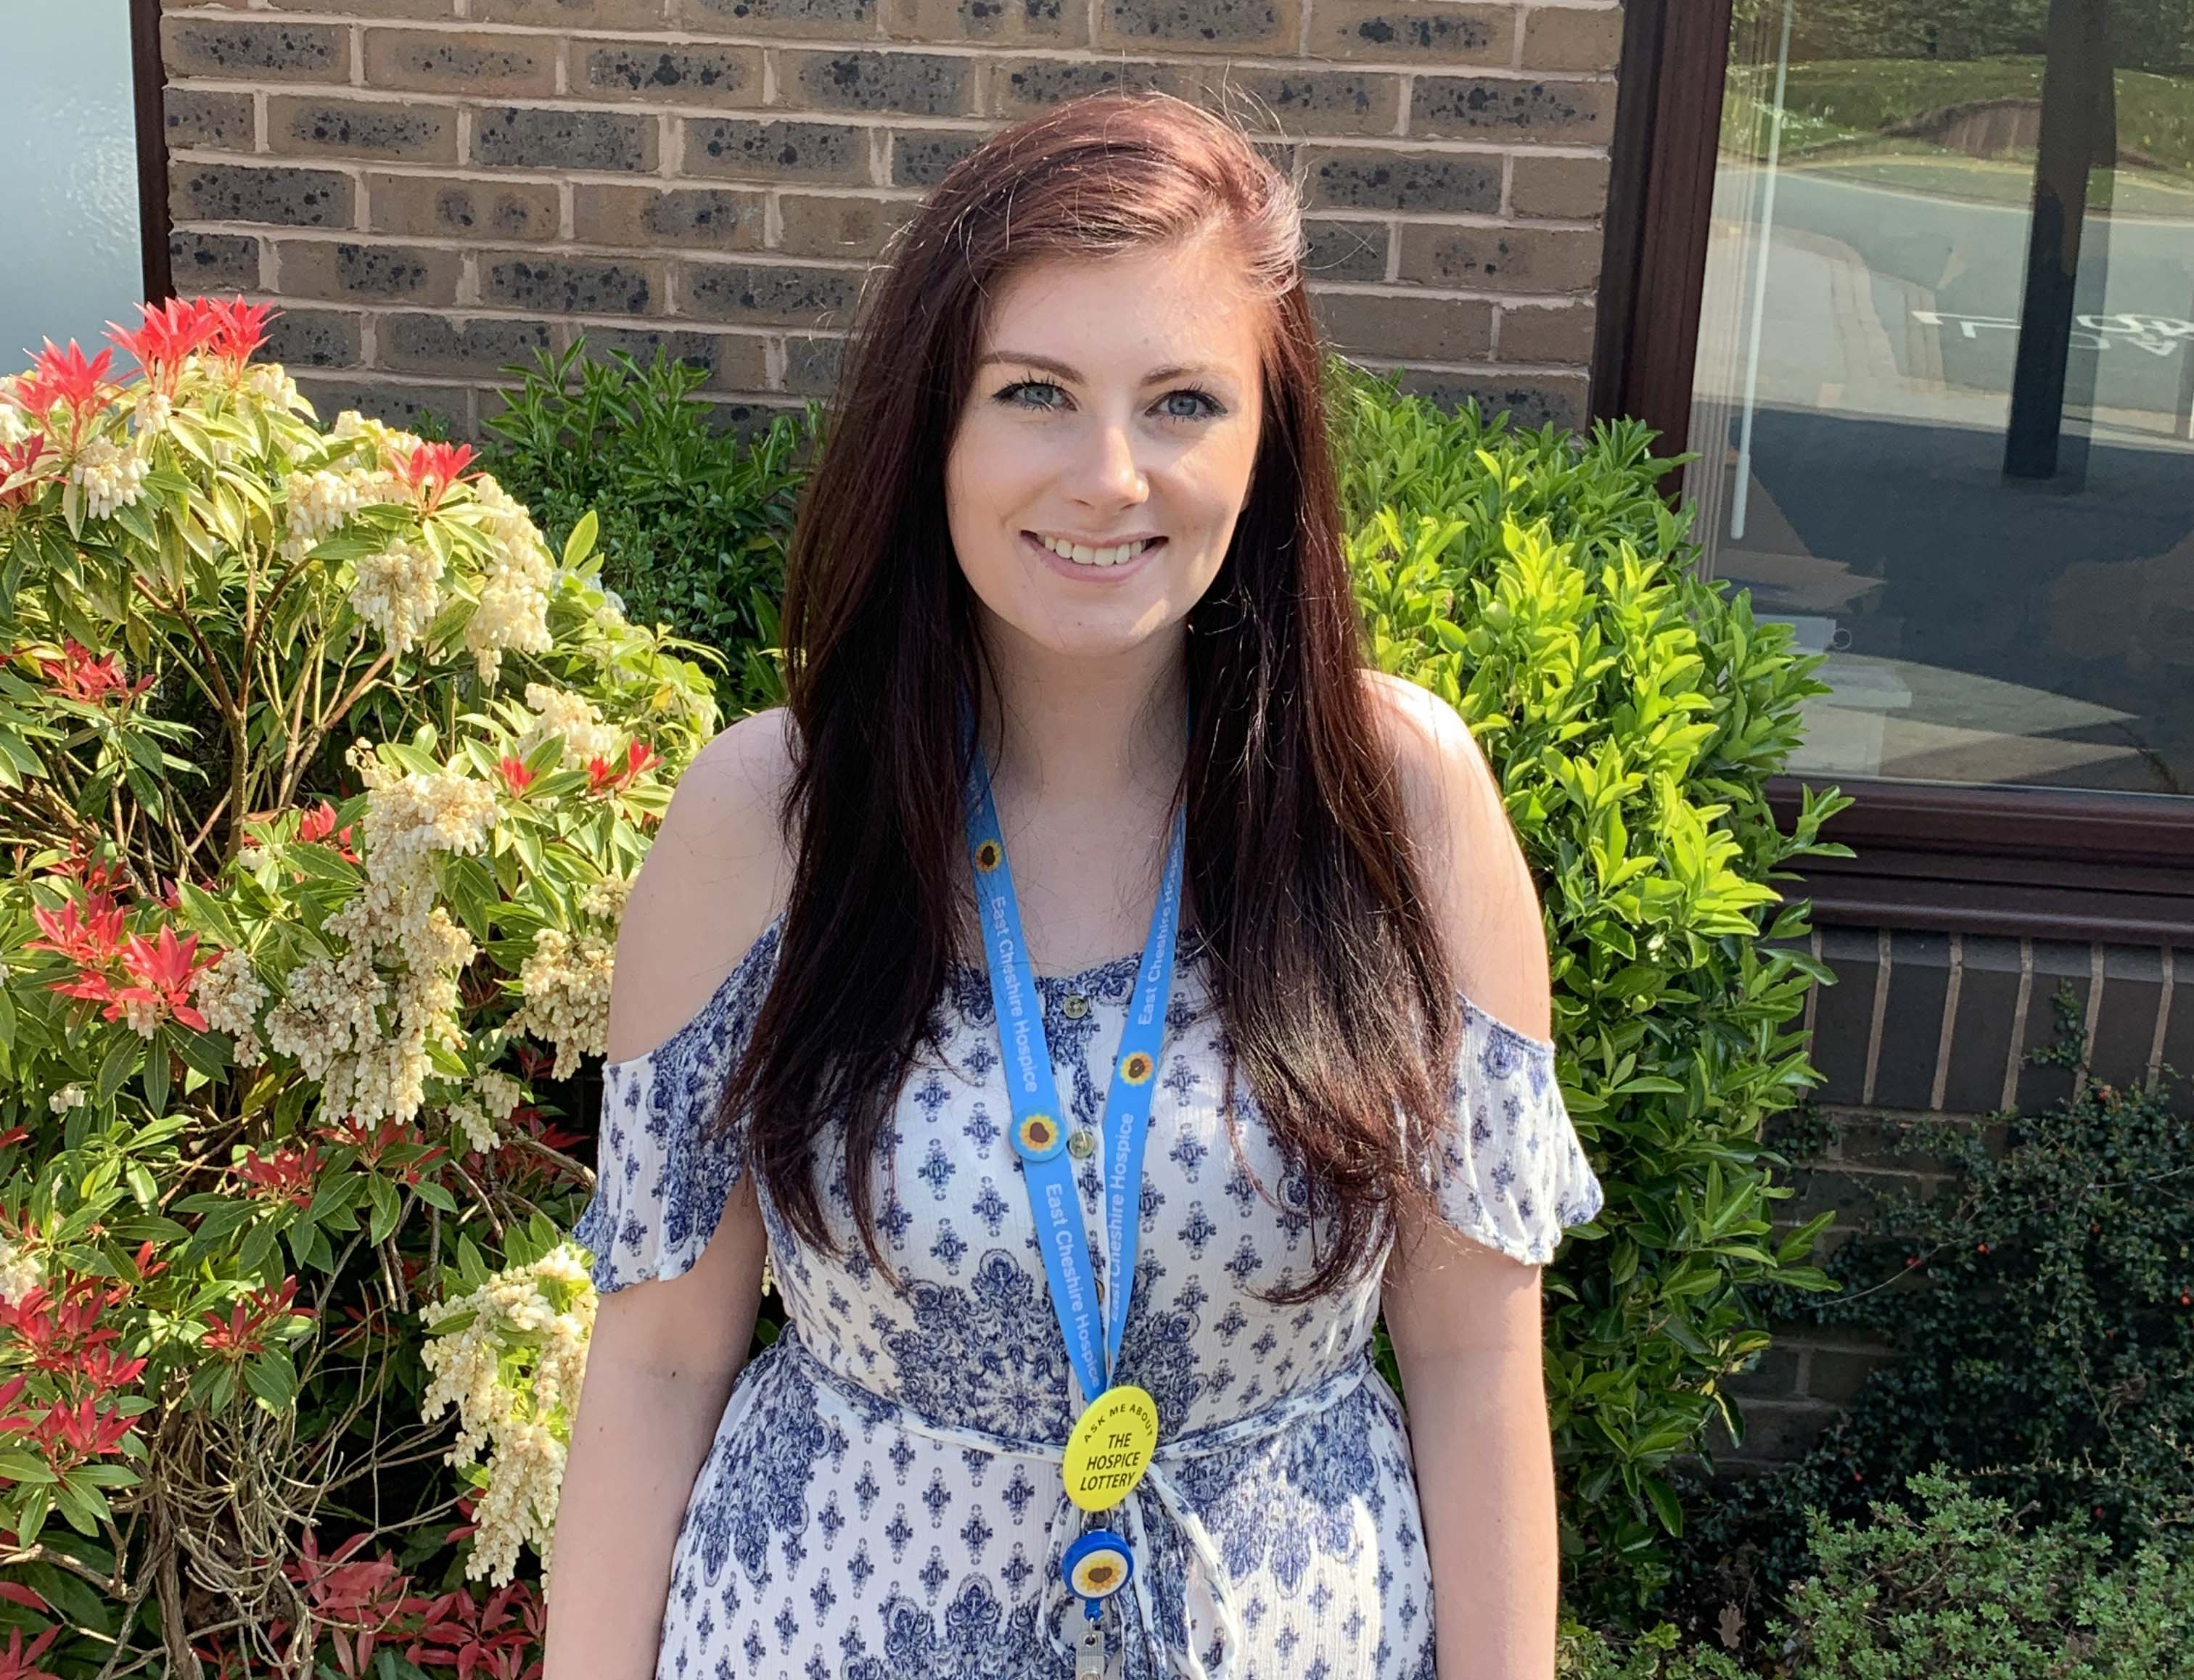 The newest member of our lottery team – Tara